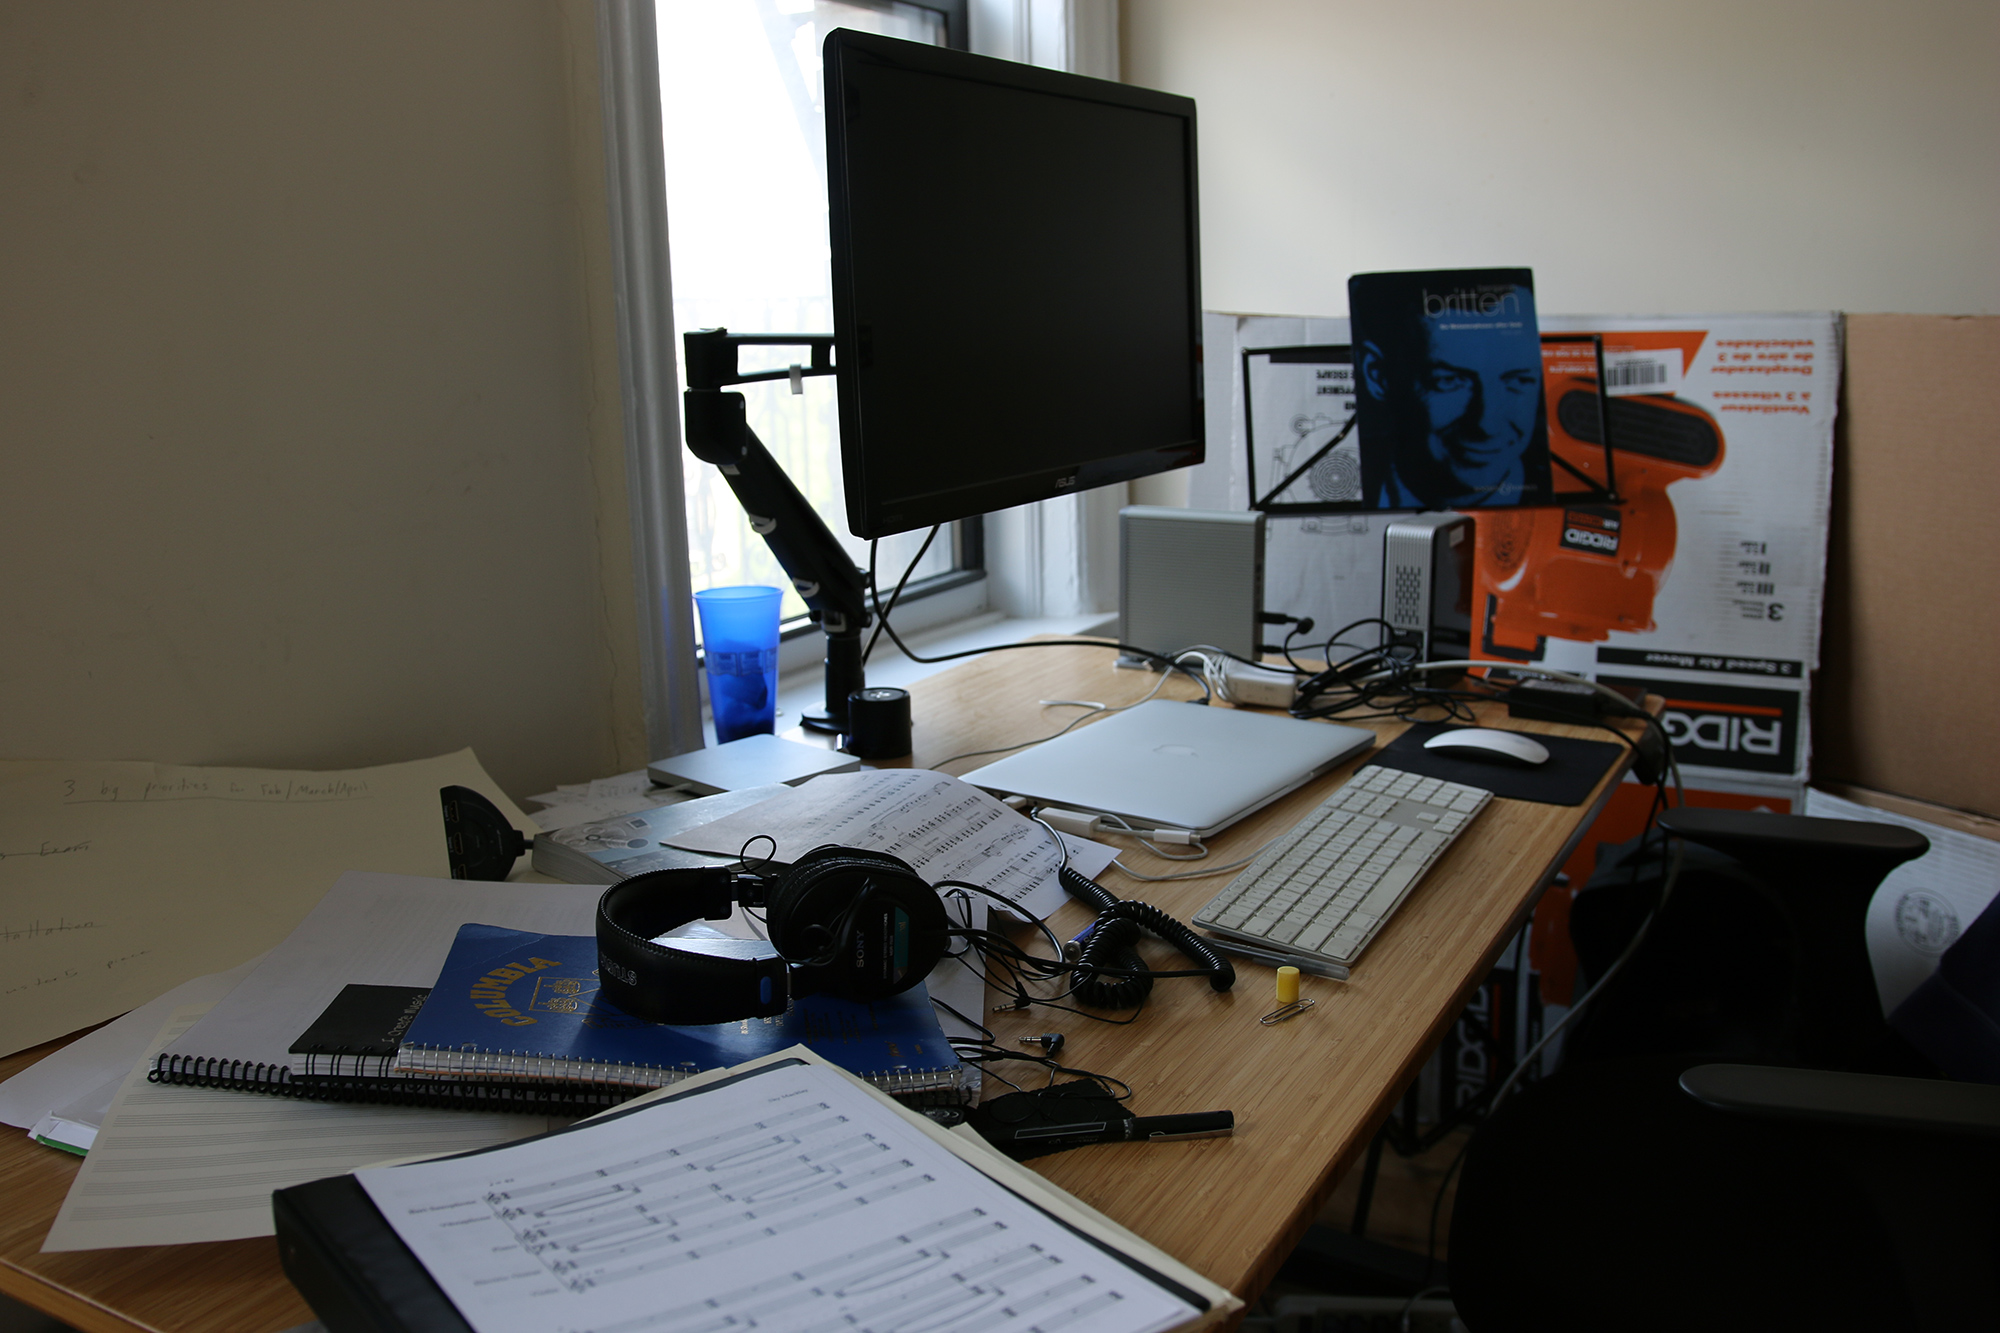 A work table with a closed laptop, an additional computer keyboard and large-scale monitor, headphones, and printed musical scores.